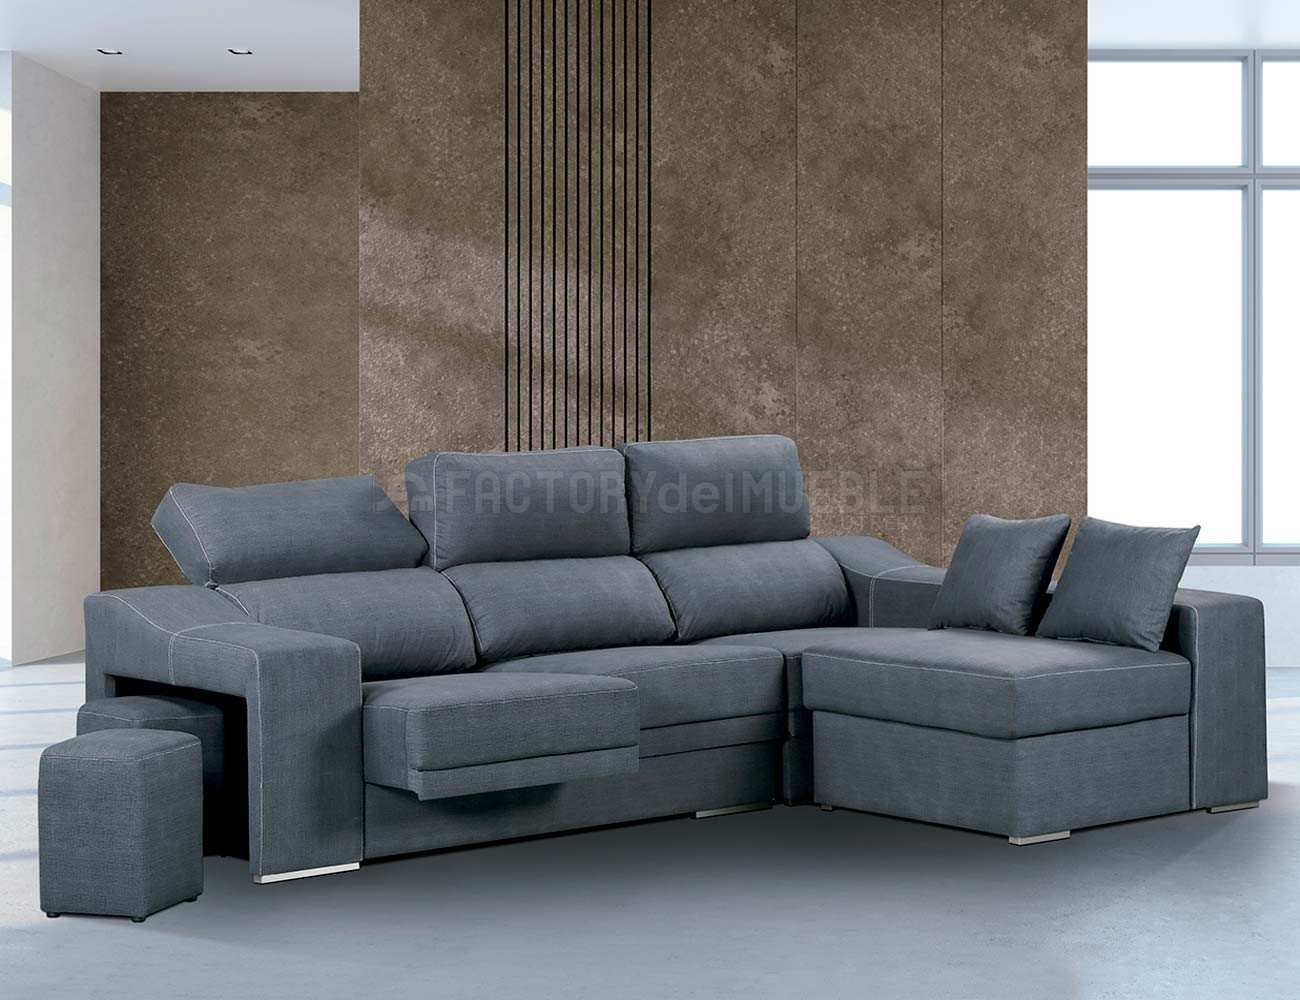 Sofa chaiselongue reversible marengo cesar